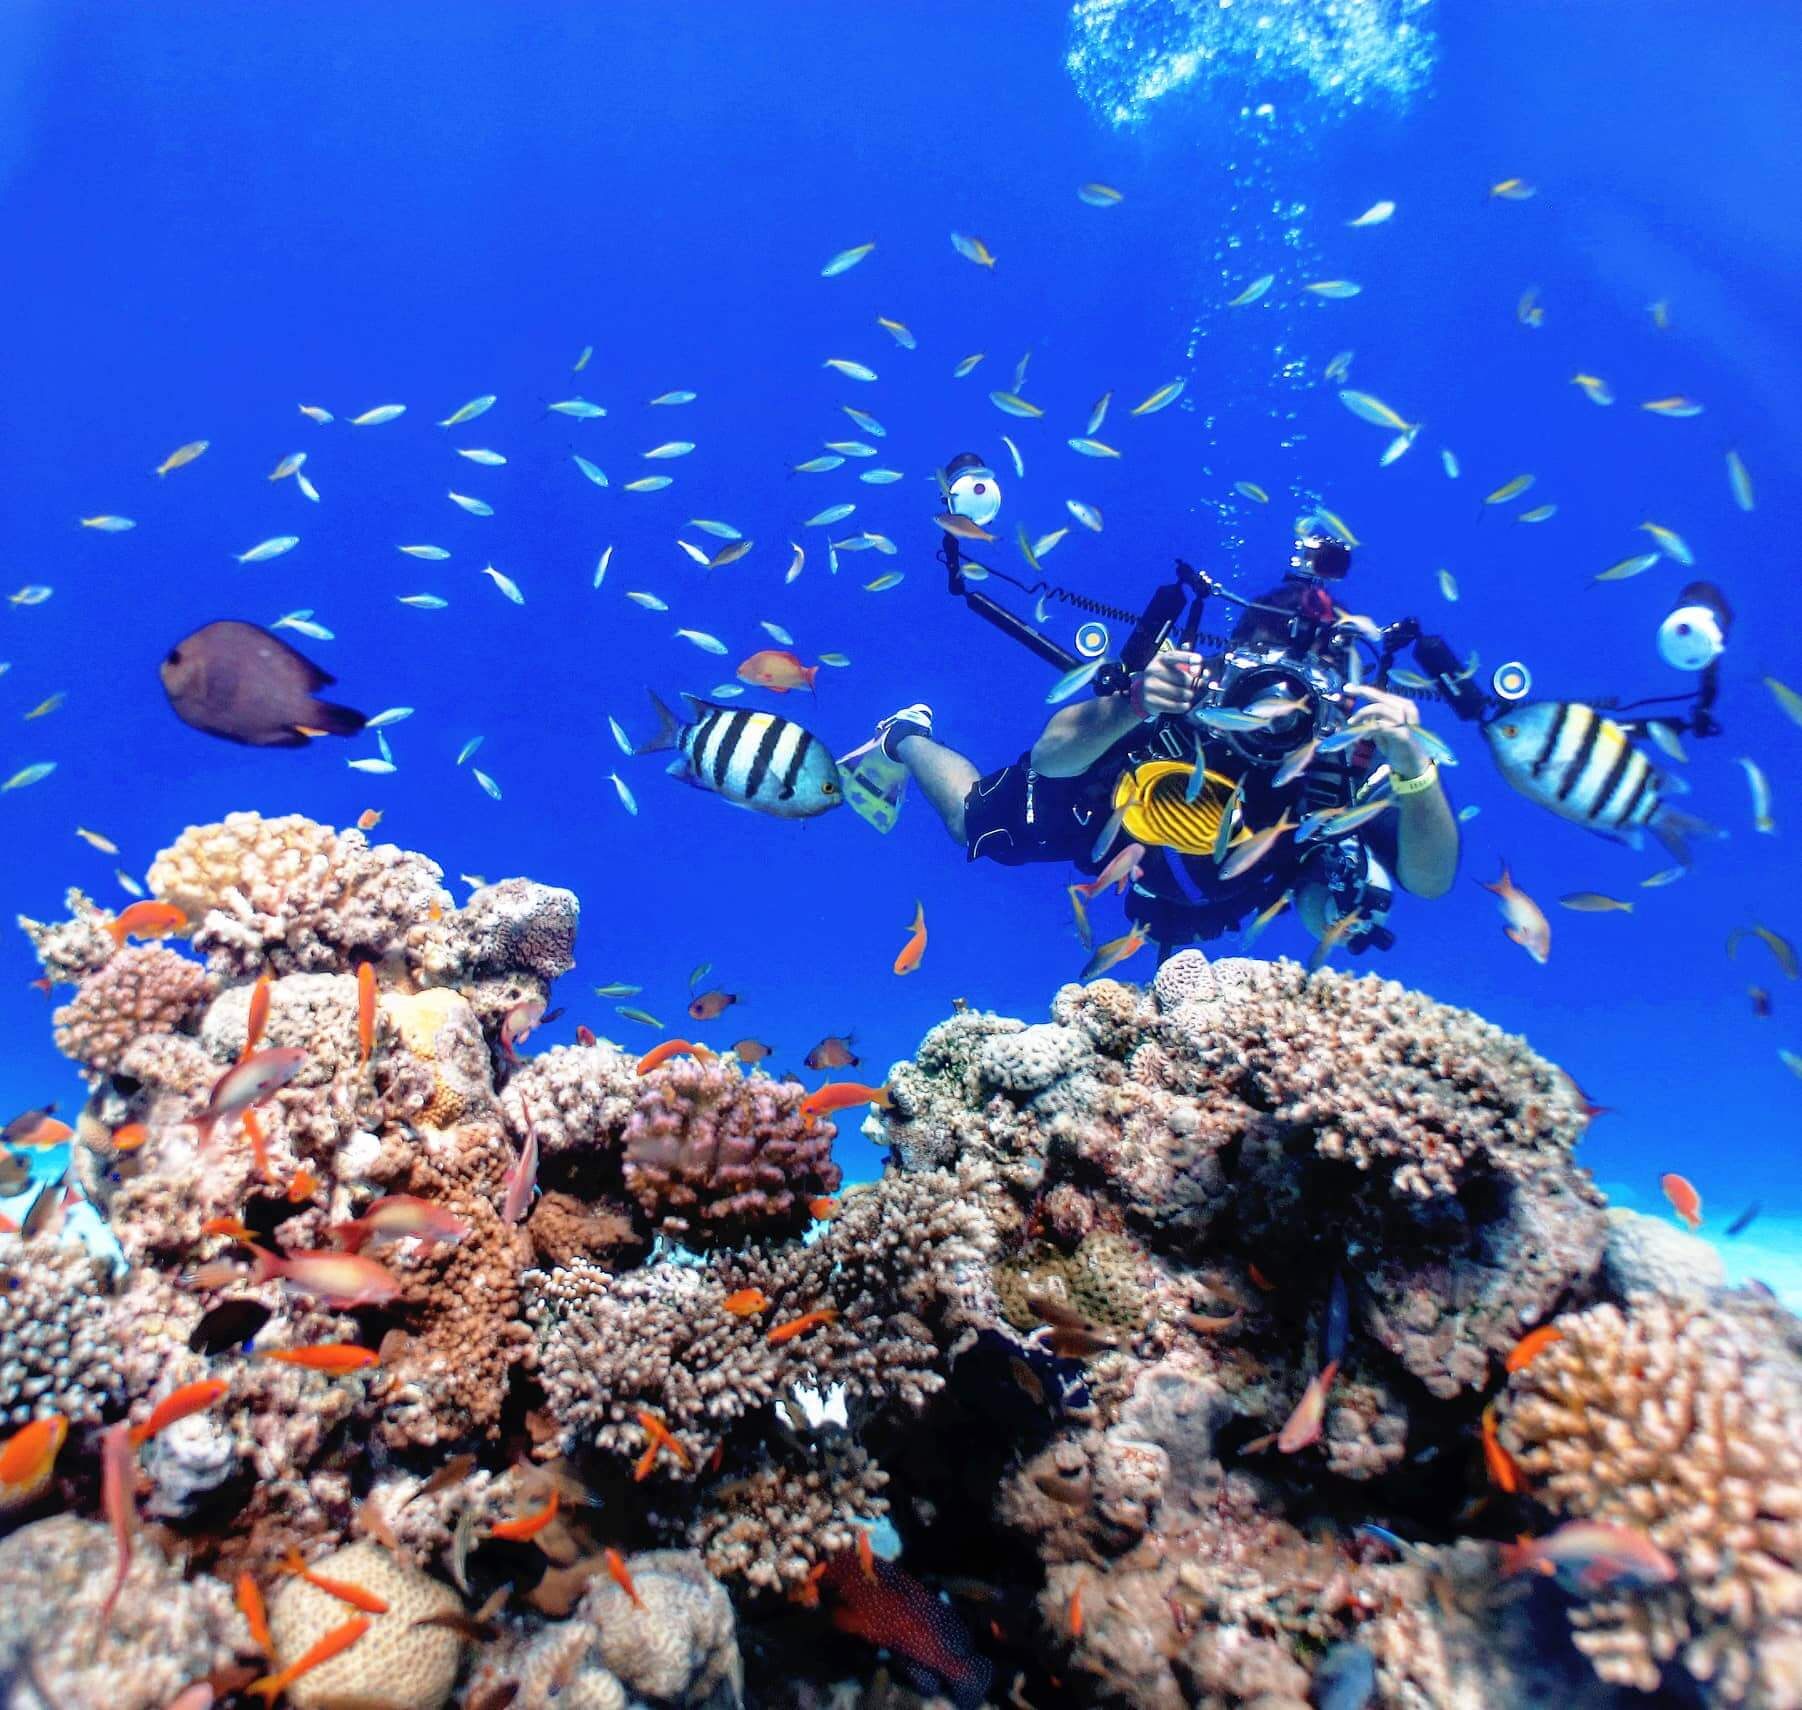 Egypt-REDSEA-Hurghada-DivePro-Academy-Scuba-Diving-Center-Fish-Coral-Reef